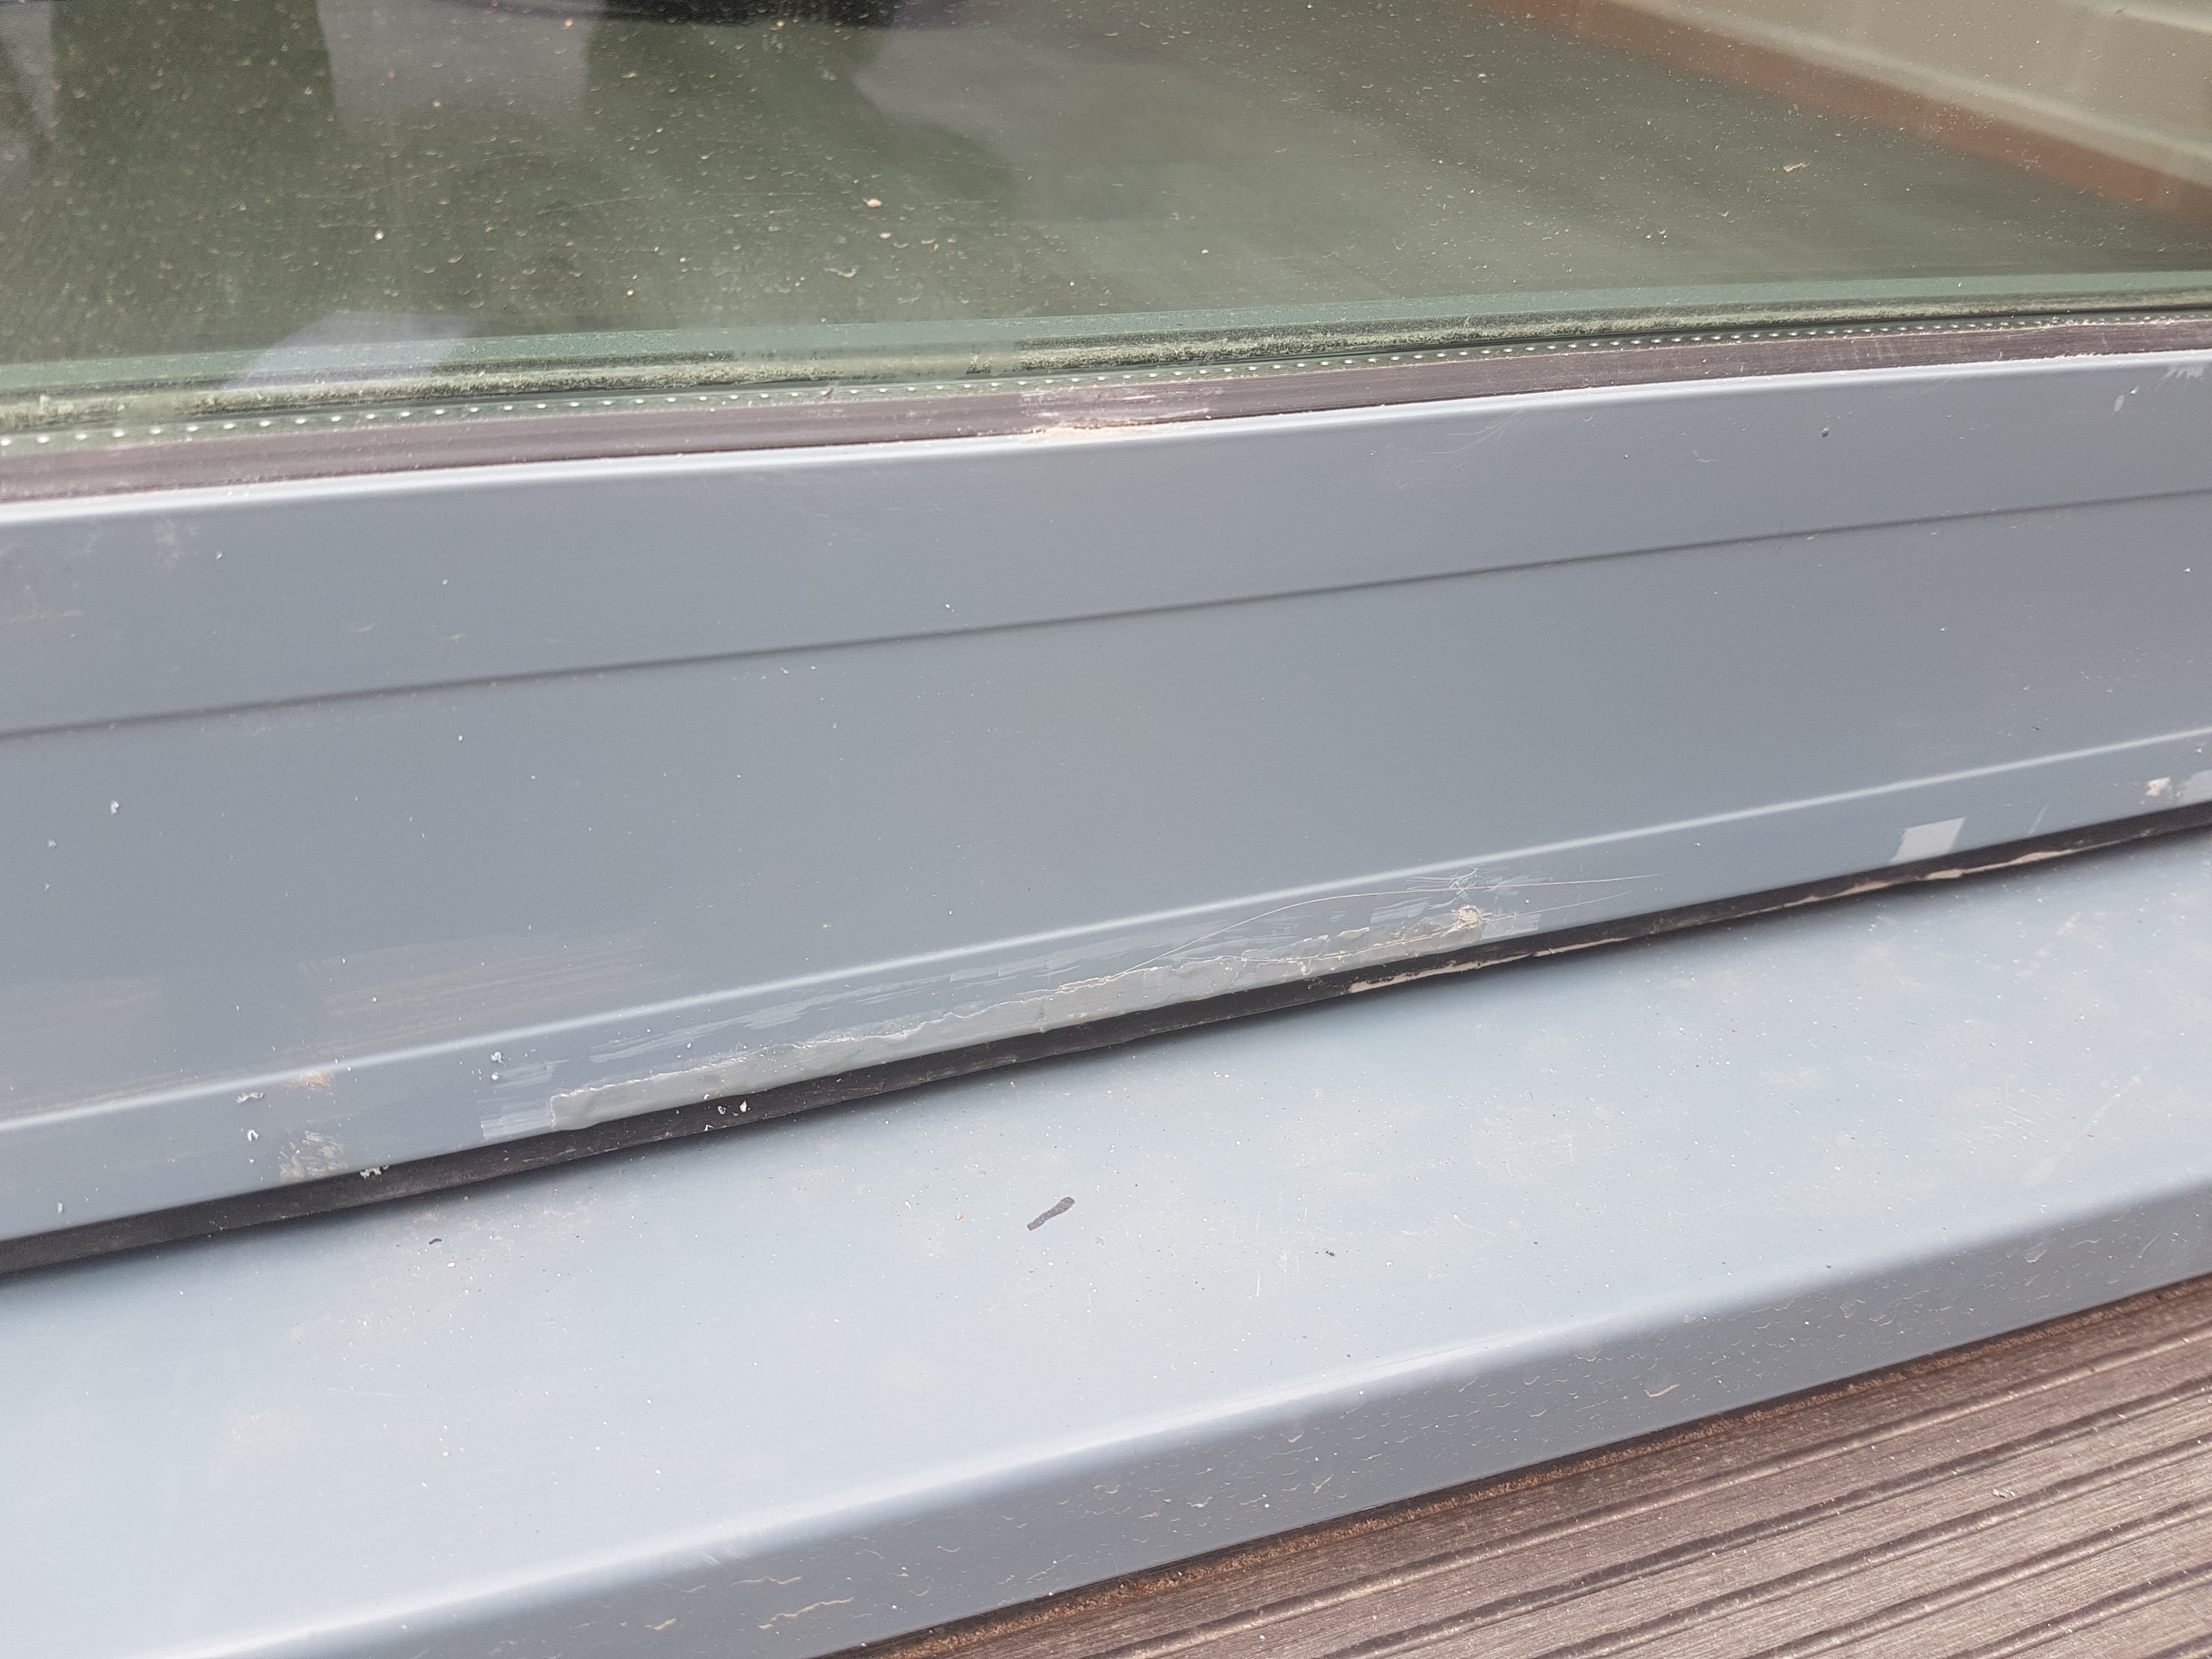 damaged window frame scratched scratches dent chip faded paint repair refurb powder coated window frame repair - Window Frame Repair